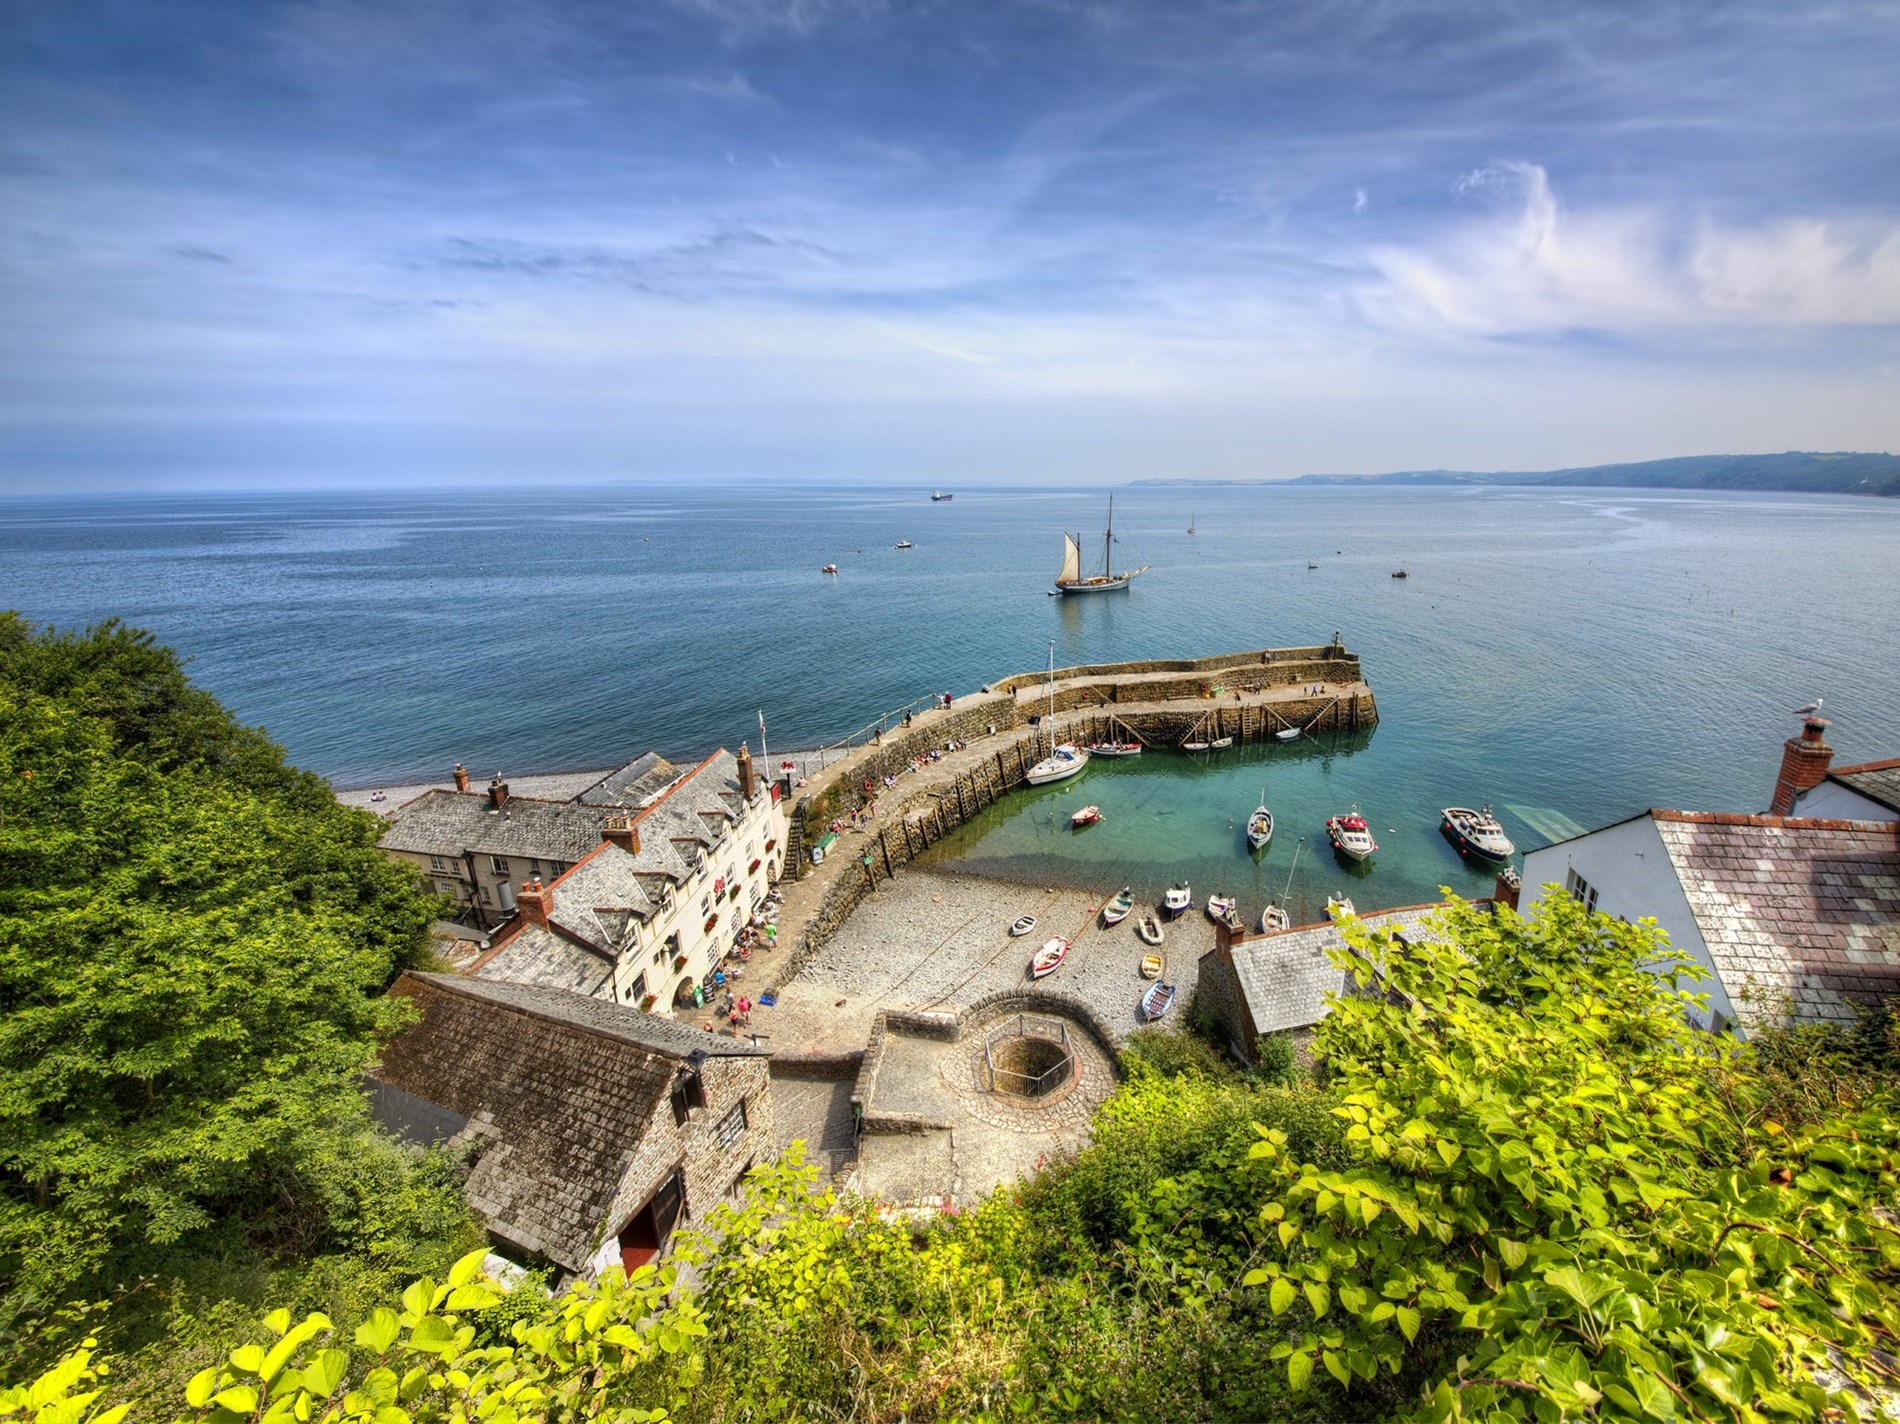 The famous village of Clovelly nearby